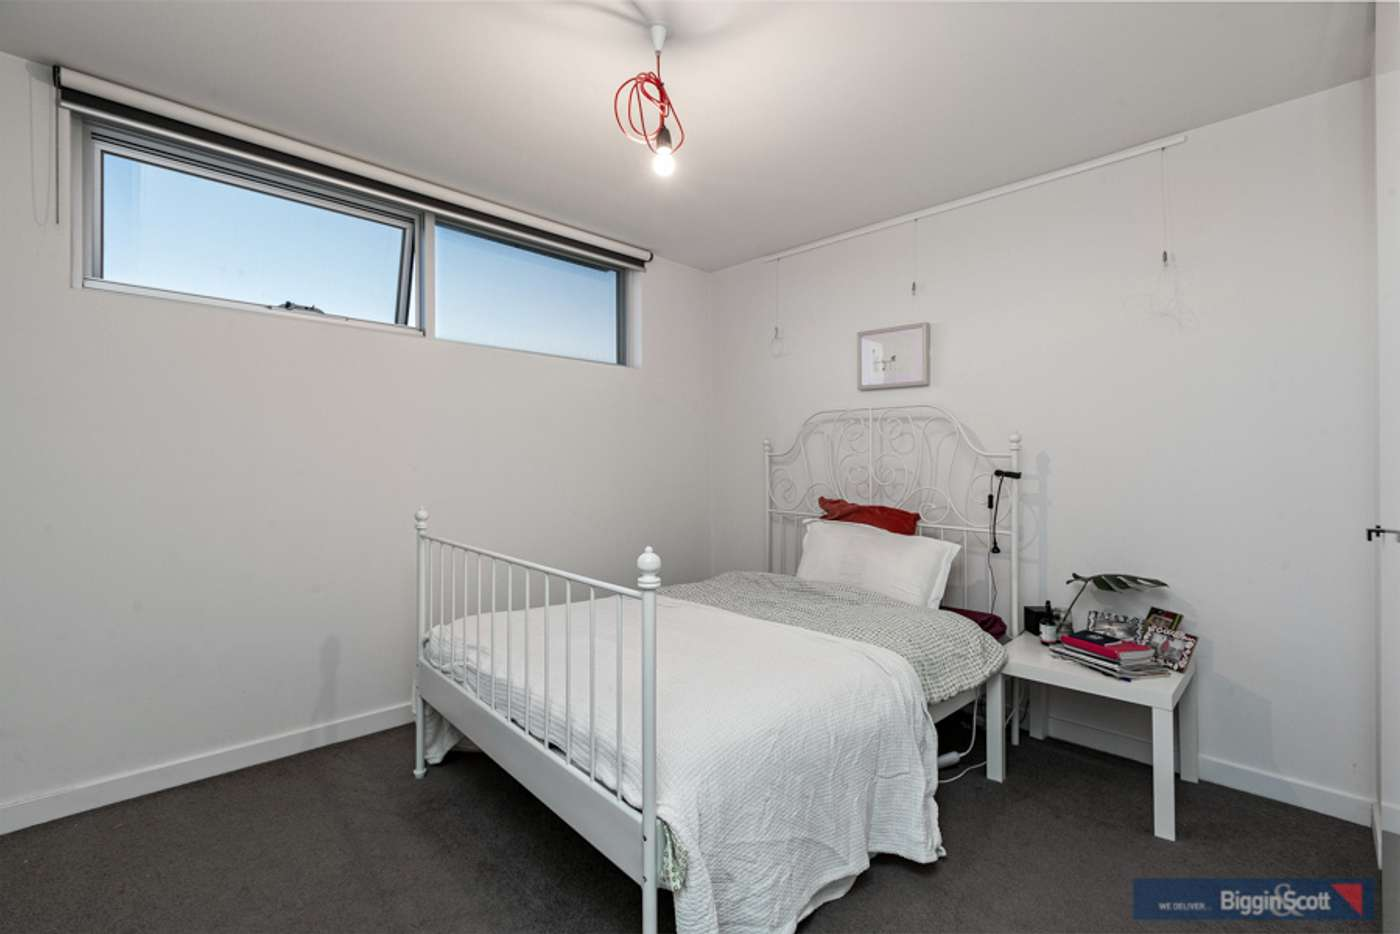 Fifth view of Homely apartment listing, 12/130 Victoria Street, Seddon VIC 3011